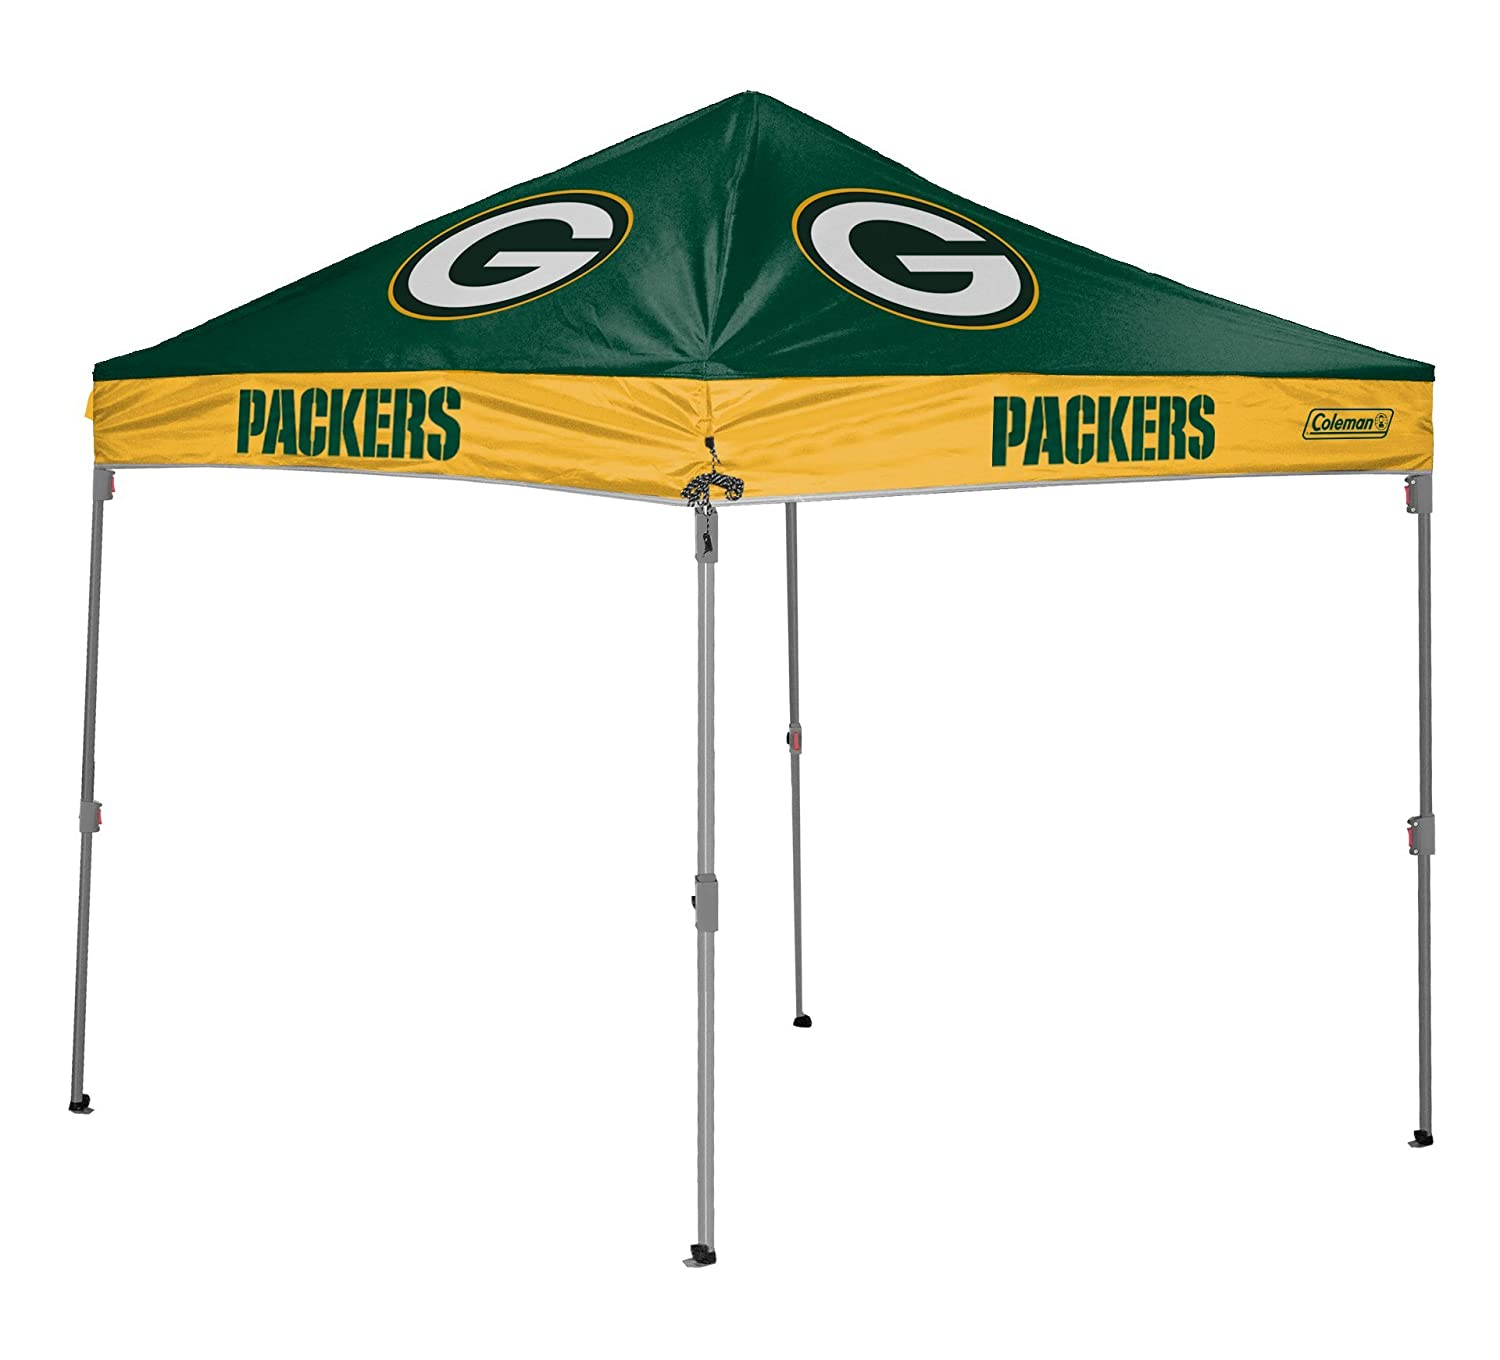 Amazon.com  NFL Instant Pop-Up Canopy Tent with Carrying Case 10x10  Sports u0026 Outdoors  sc 1 st  Amazon.com & Amazon.com : NFL Instant Pop-Up Canopy Tent with Carrying Case ...